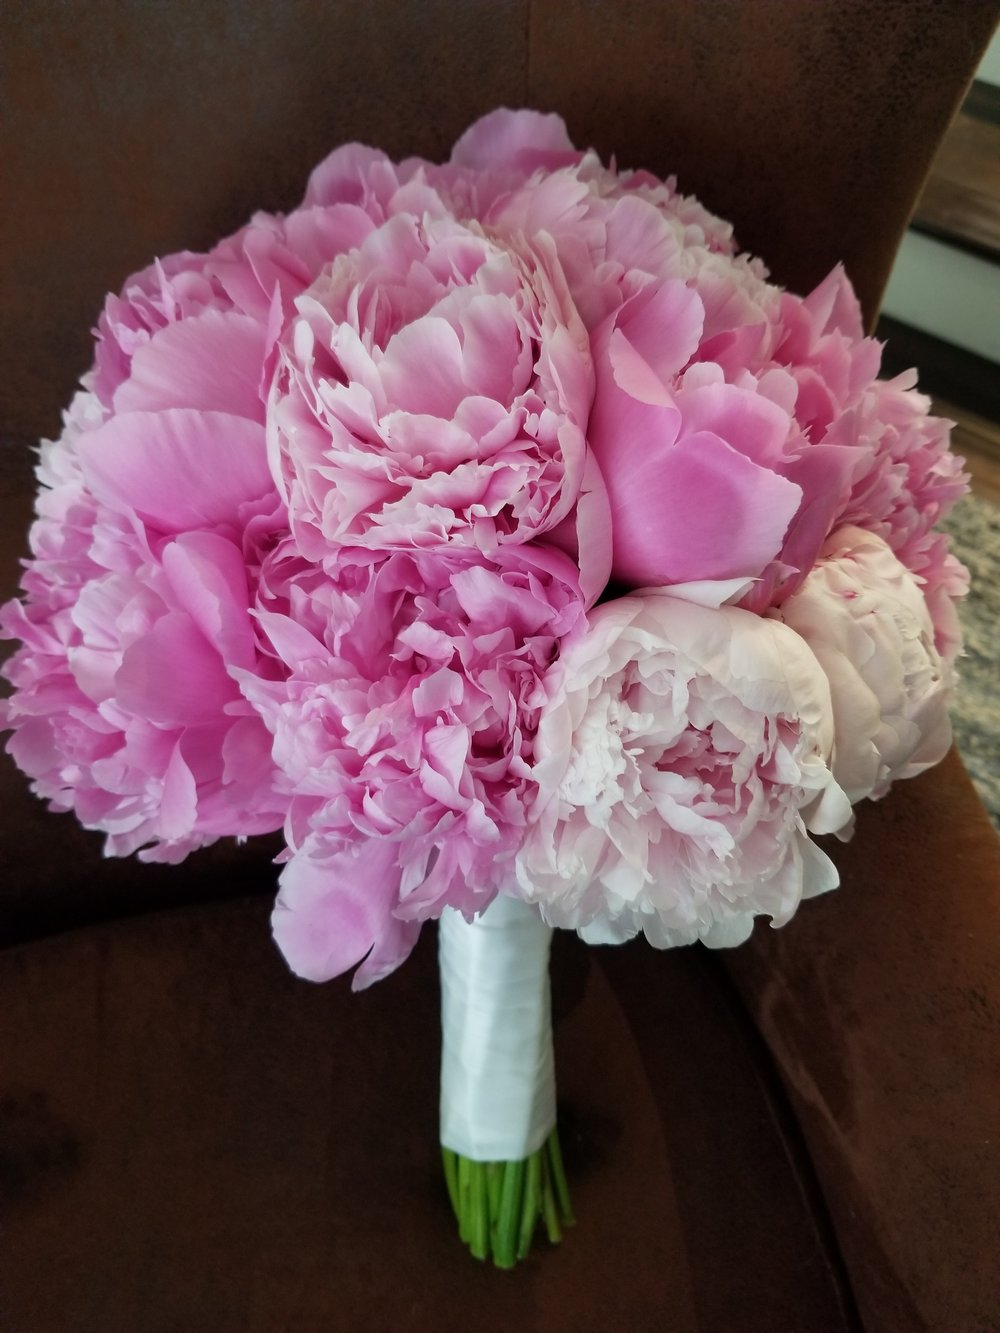 Pretty pink bridal bouquet, all peonies in shades of bright pink and blush.